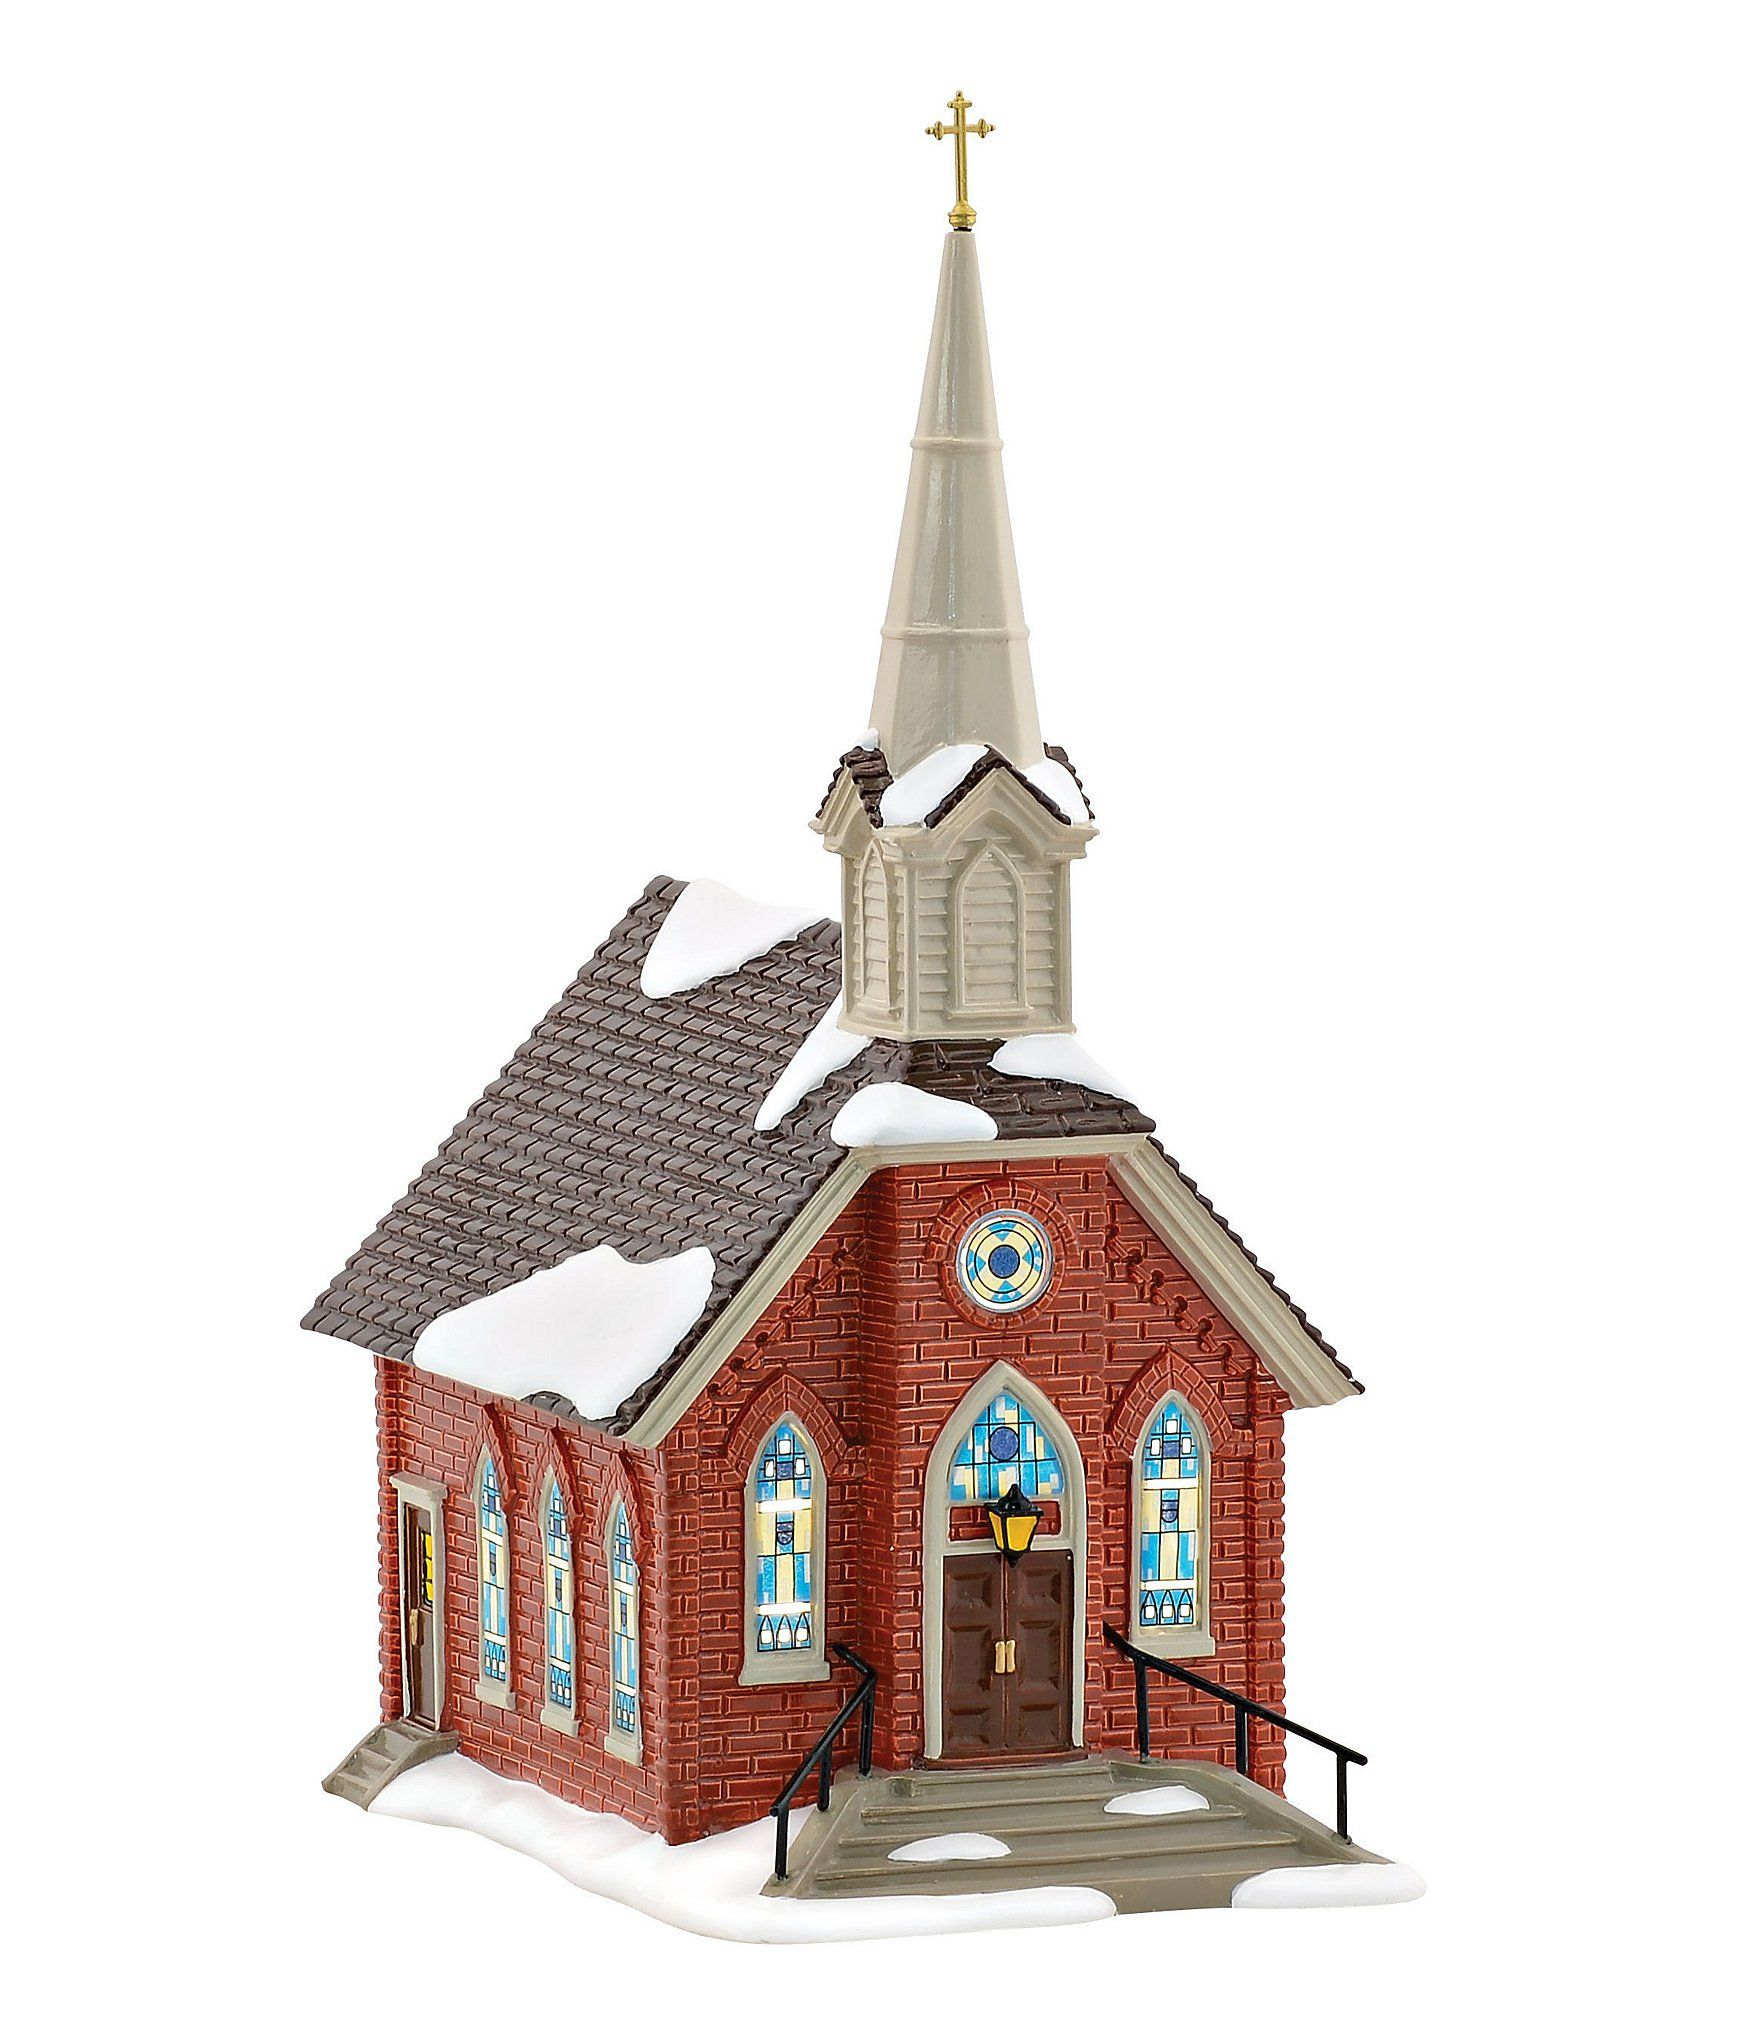 Department 56 Old St. John's Church | Dillard's #department56